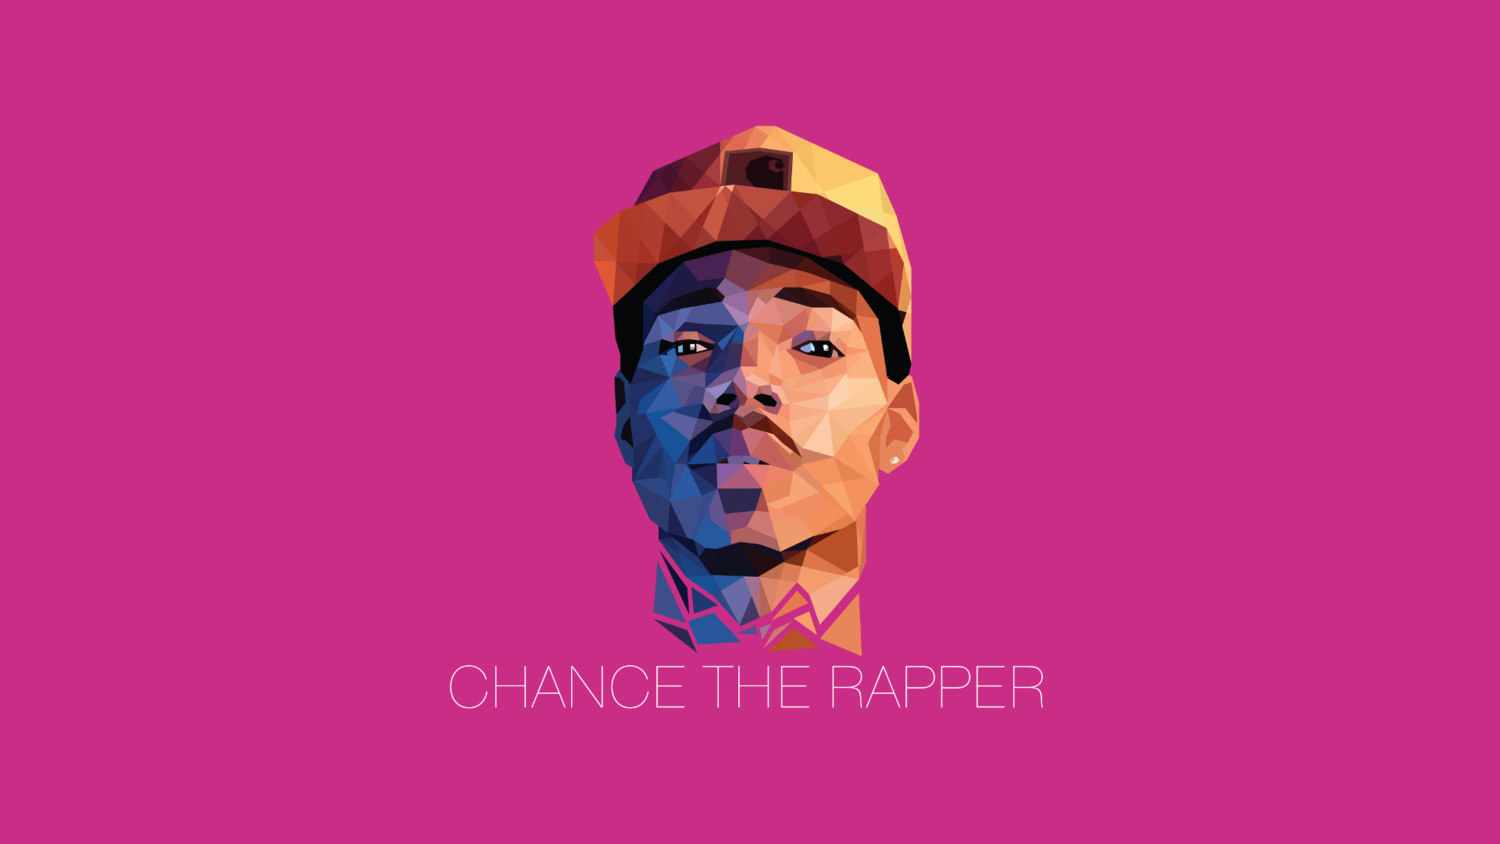 The coloring book chance the rapper download - Chance The Rapper By Vinayak Kumar W 20